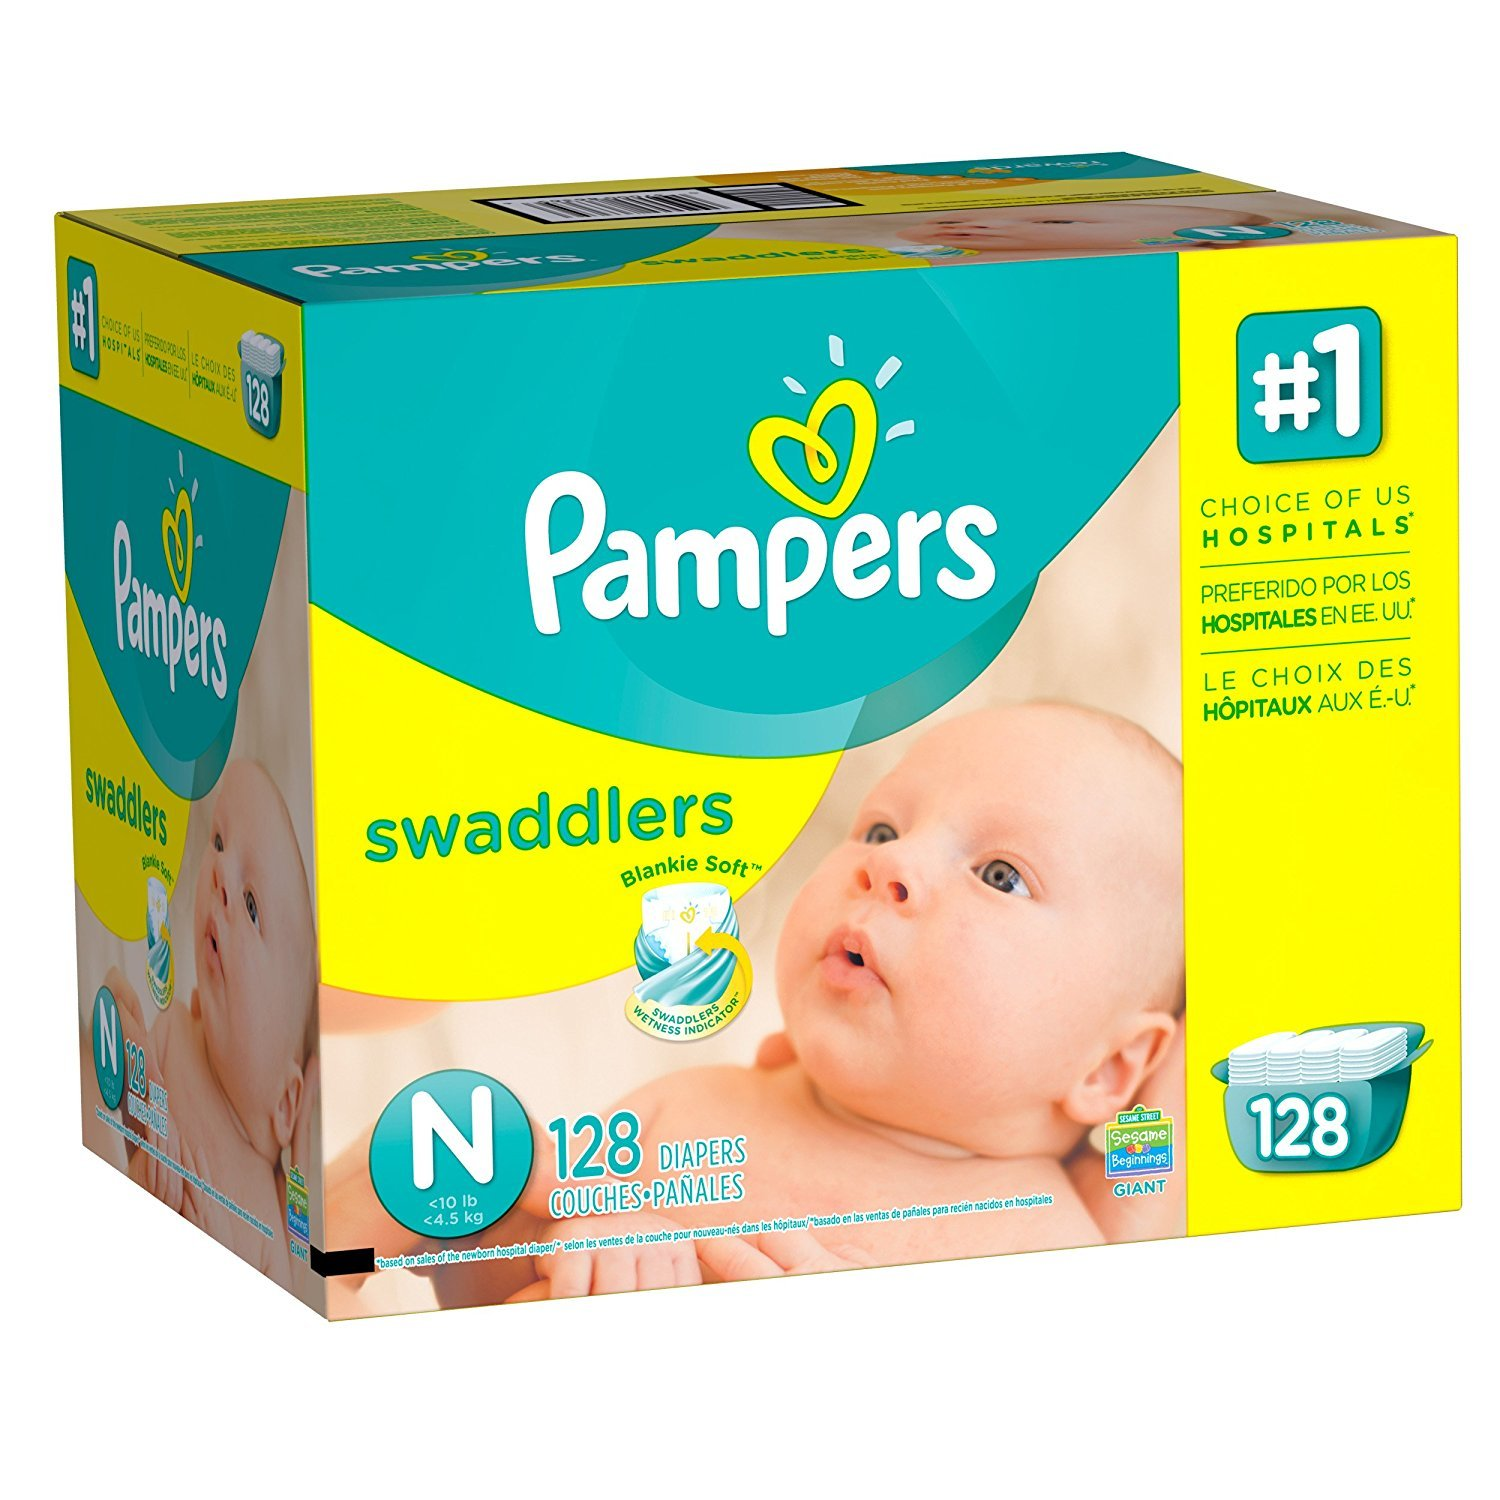 99779ab2948 Amazon.com: Pampers Swaddlers Diapers: Health & Personal Care